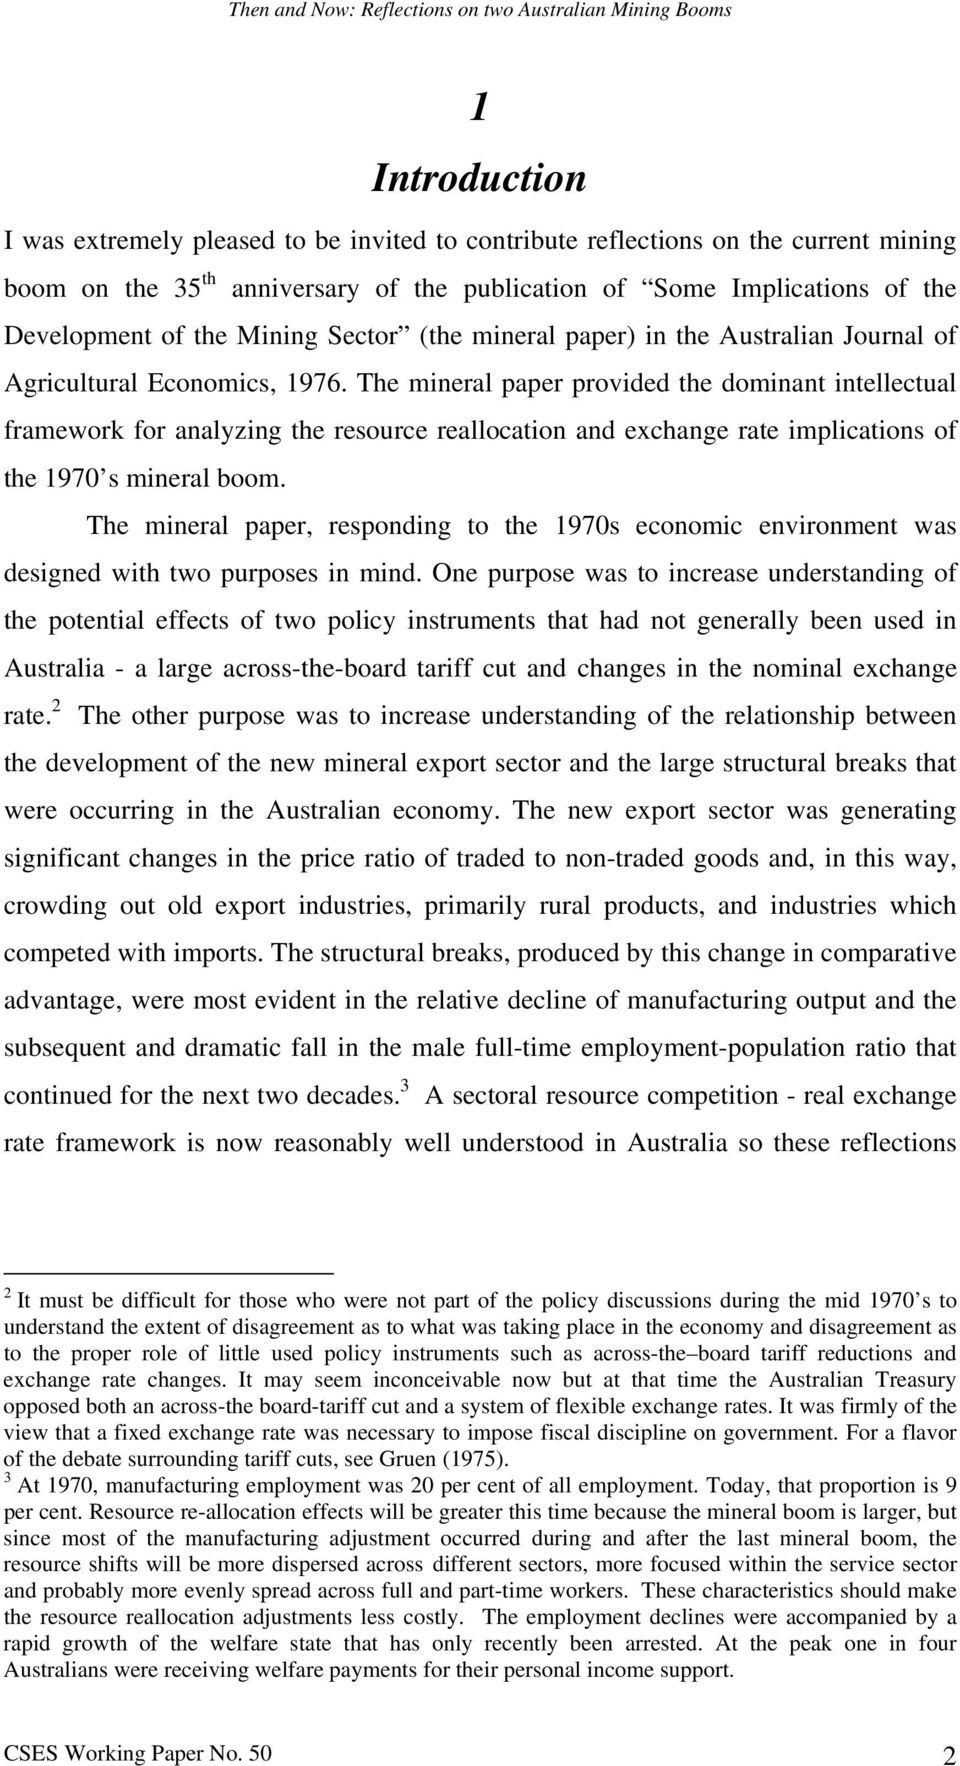 The mineral paper provided the dominant intellectual framework for analyzing the resource reallocation and exchange rate implications of the 1970 s mineral boom.